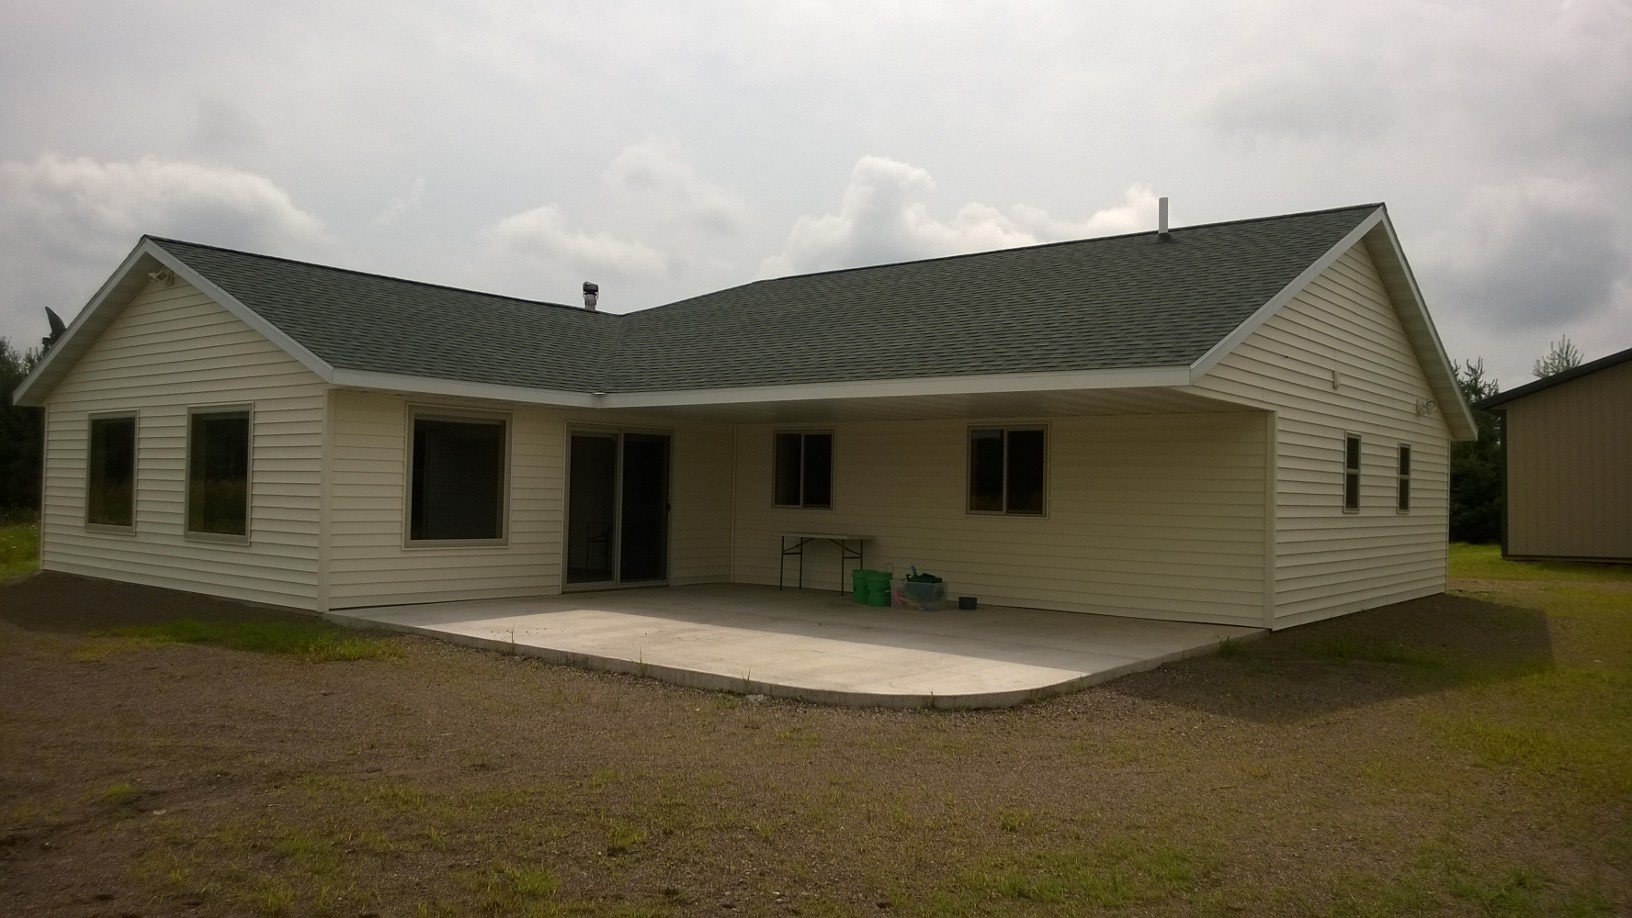 W2466 Wood Creek Avenue, Rib Lake, Wisconsin 54470